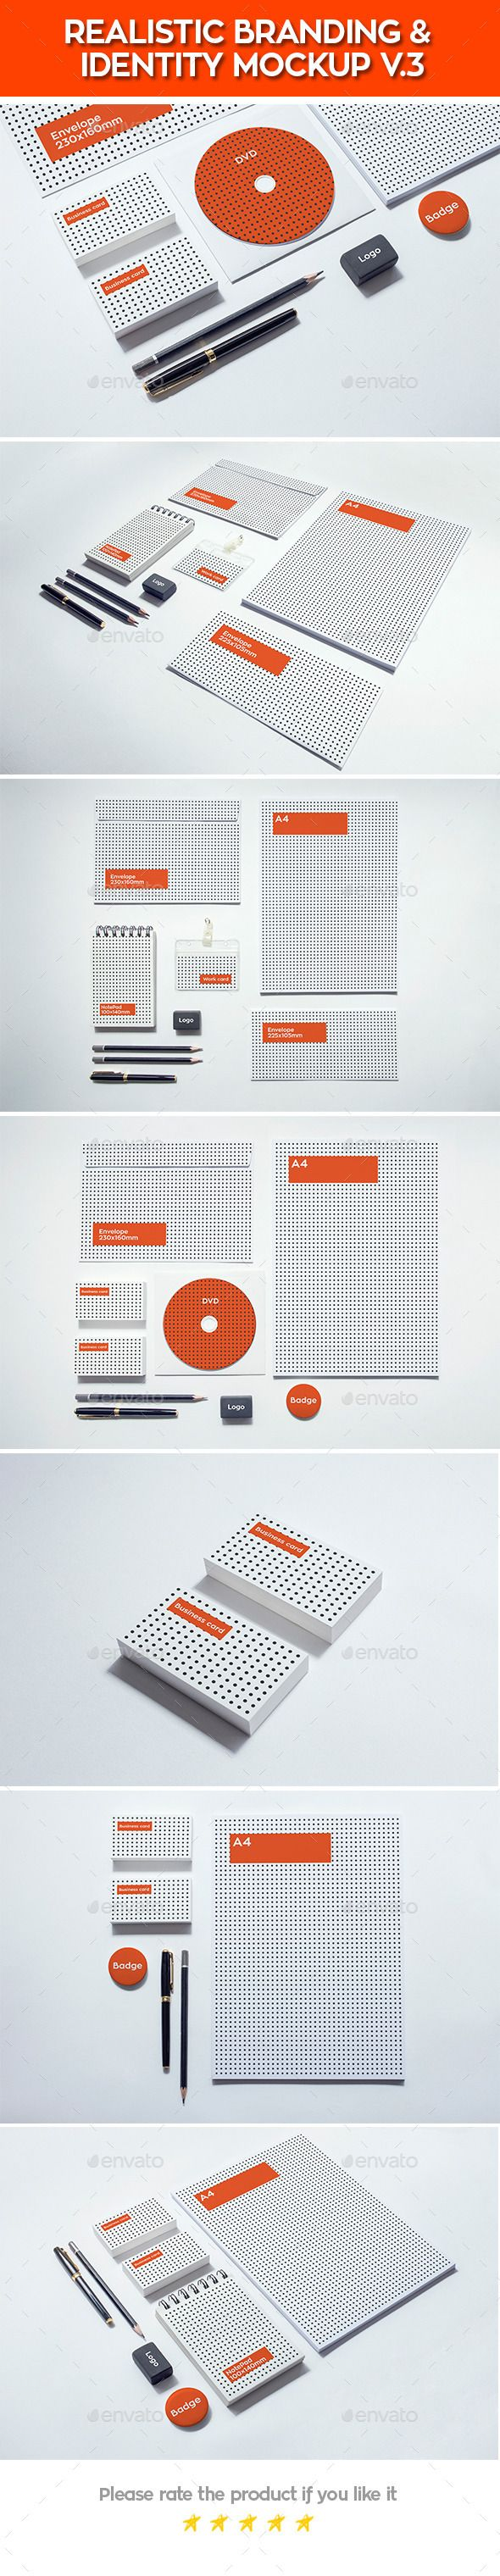 Realistic Branding & Identity Design Mockups V3 (Stationery) - Stunning Resources for designers - OrTheme